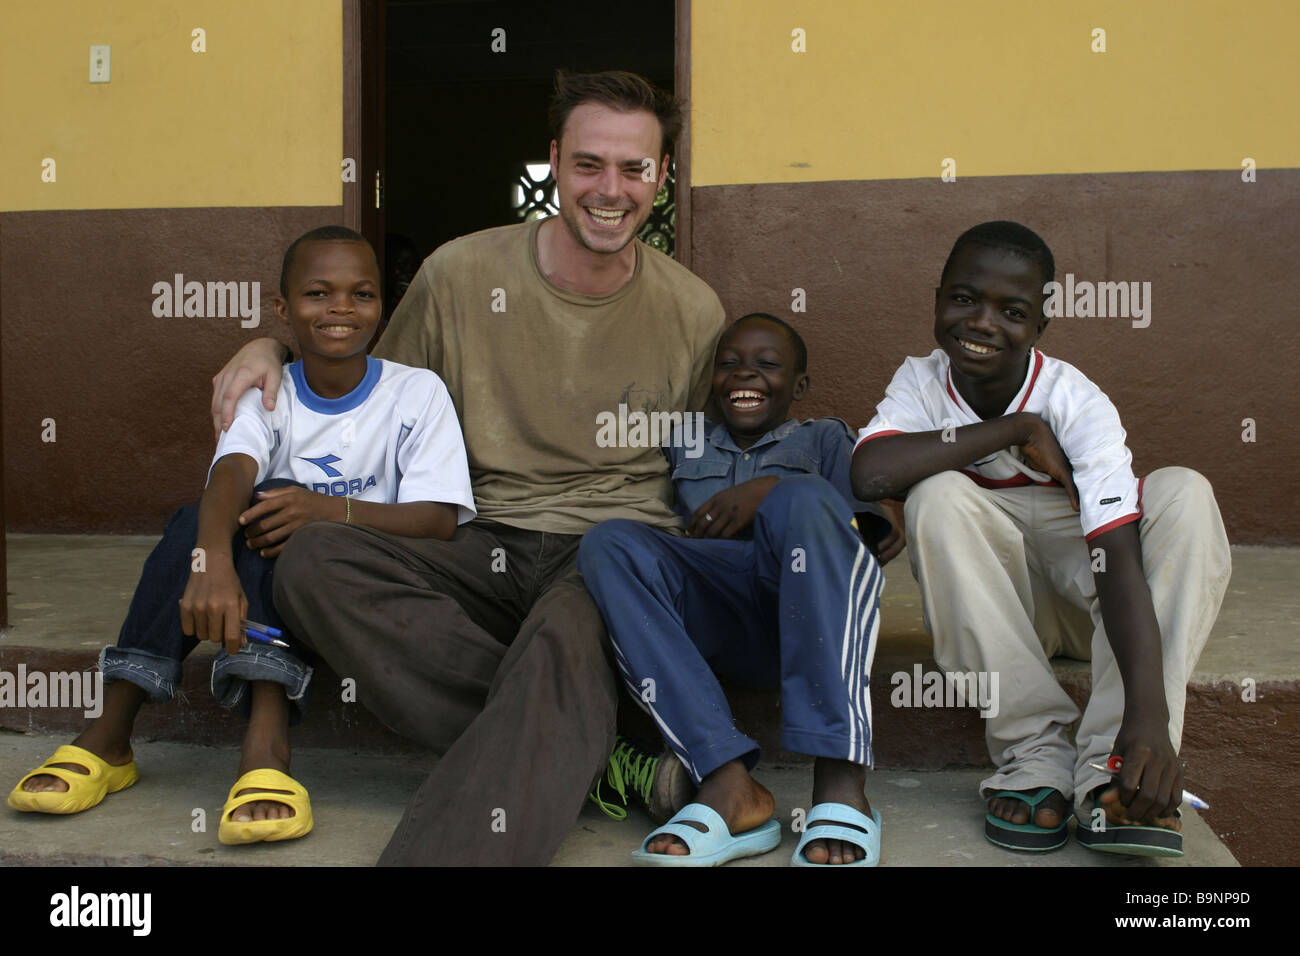 TV and radio presenter Jamie Theakston poses for photographs with ex-child combatants/soldiers in Liberia - Stock Image